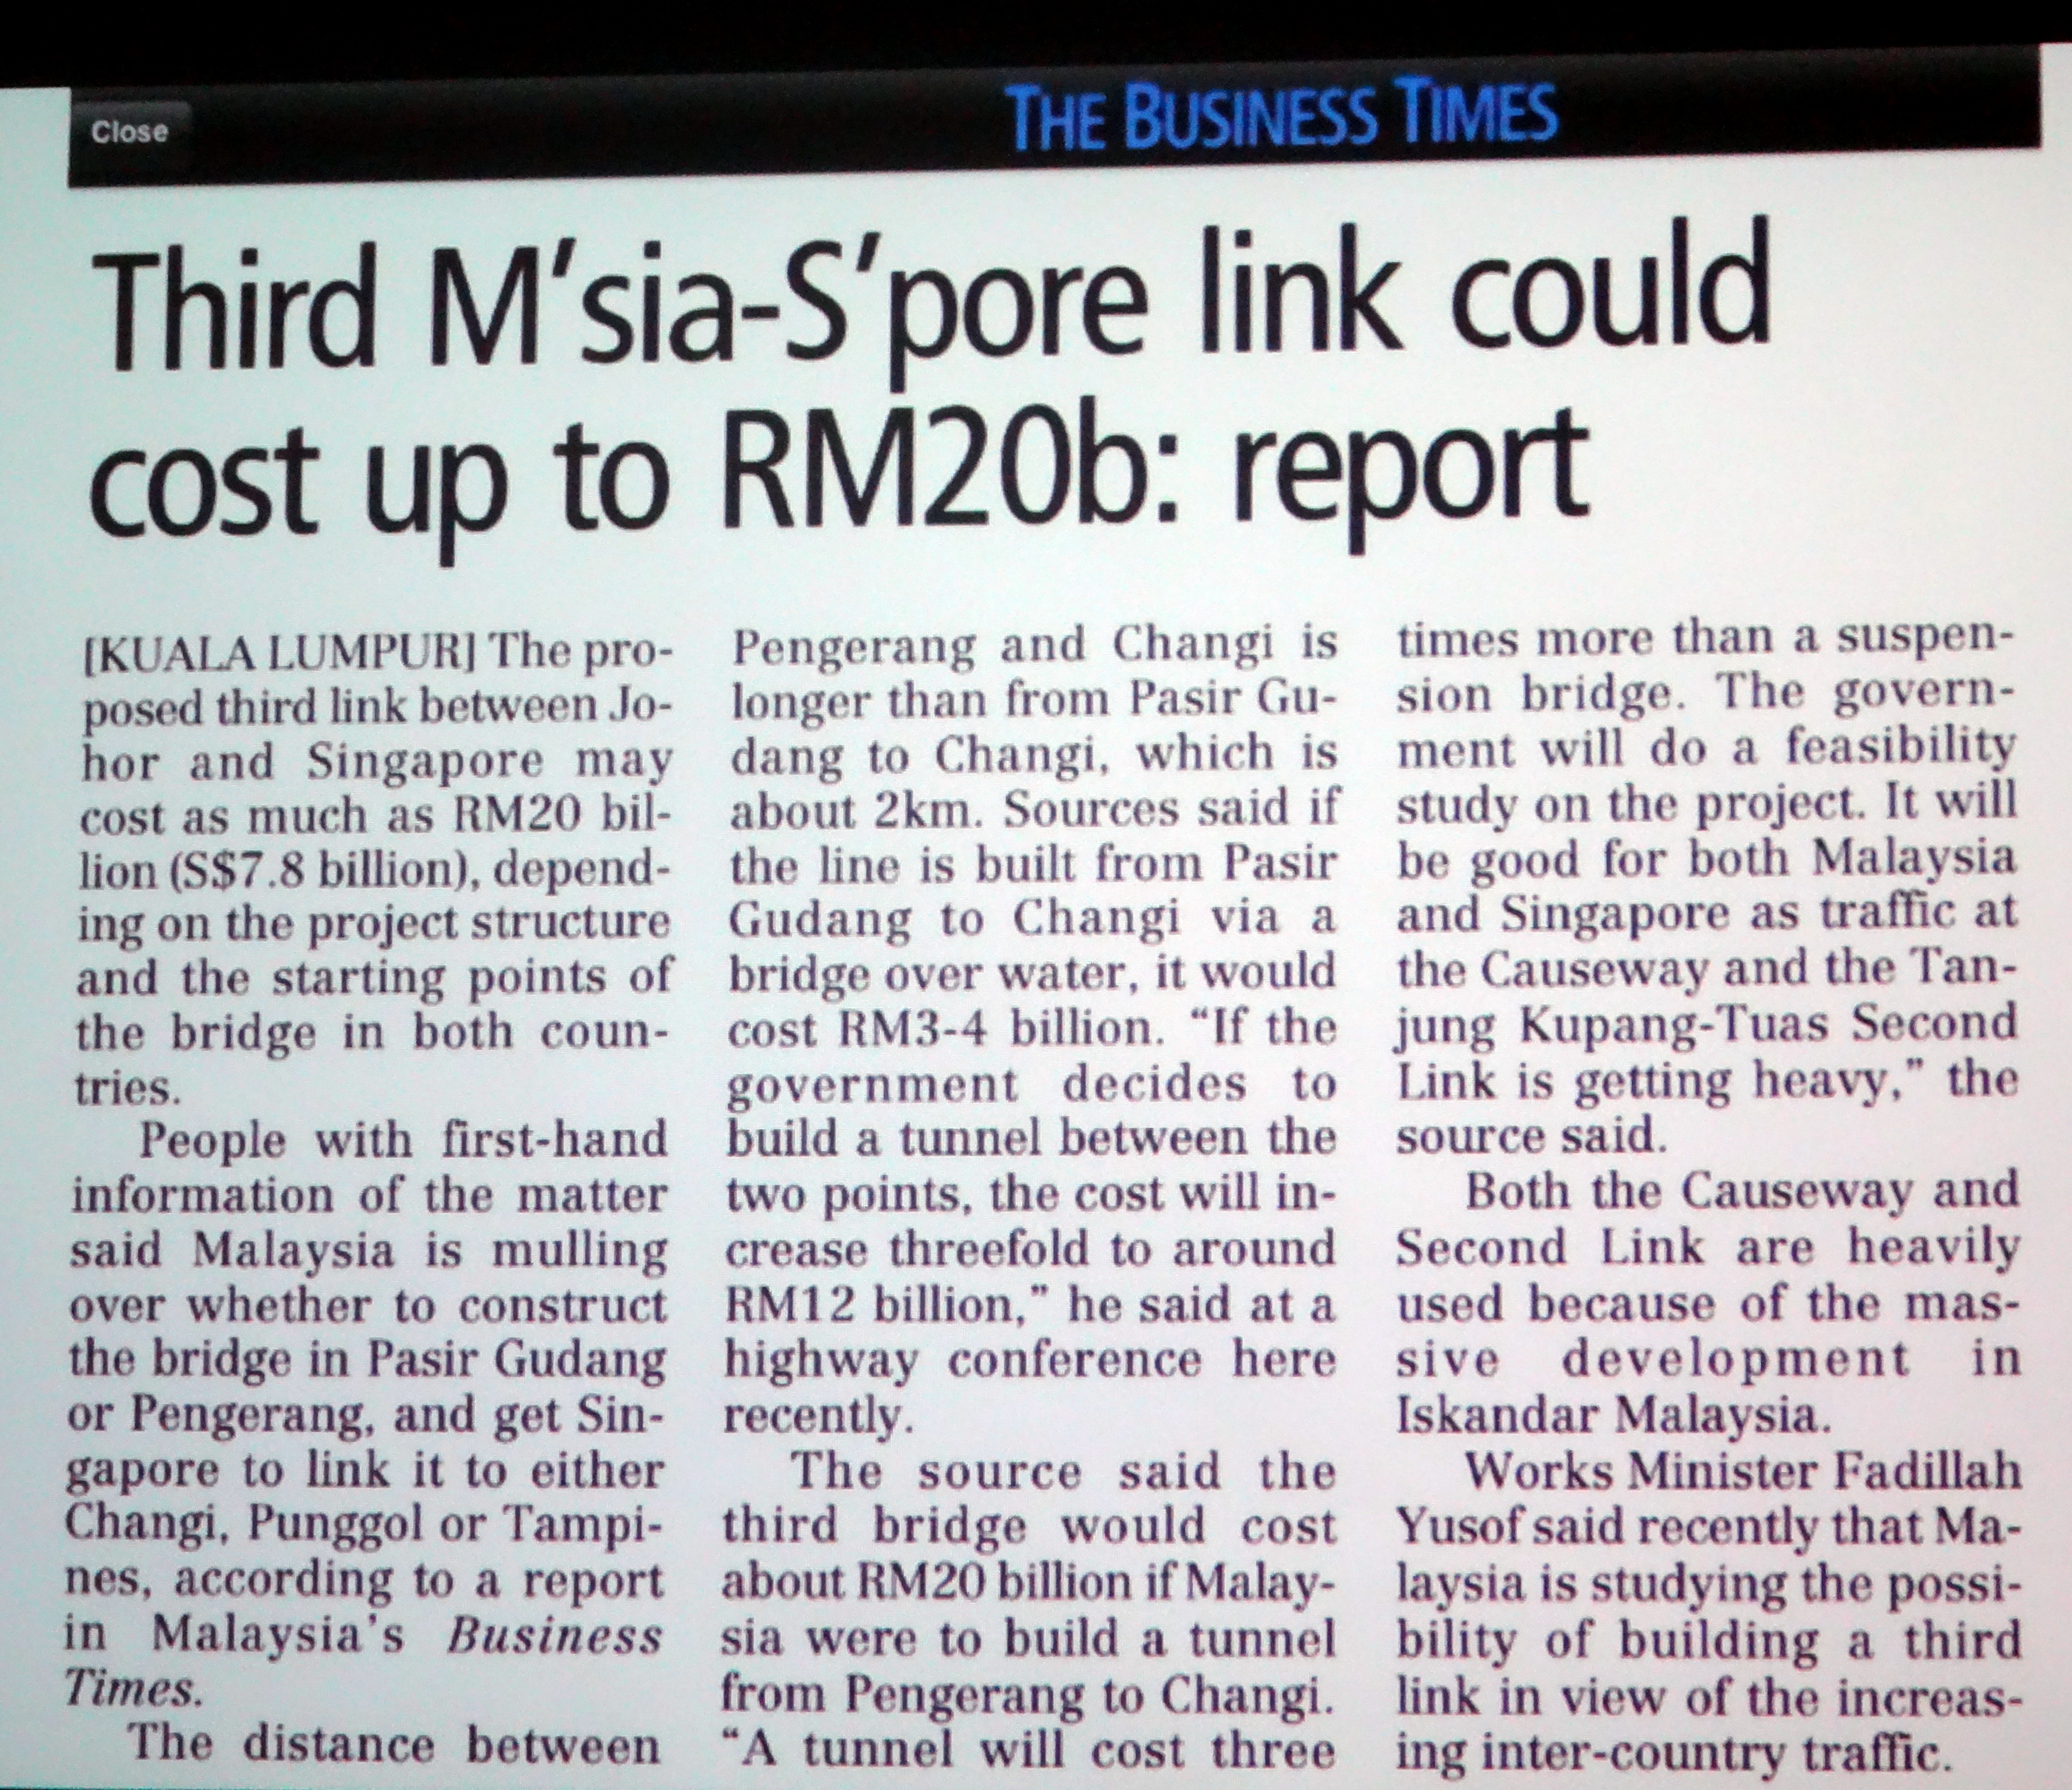 Third Msia – Spore link  could cost up to RM20B Report